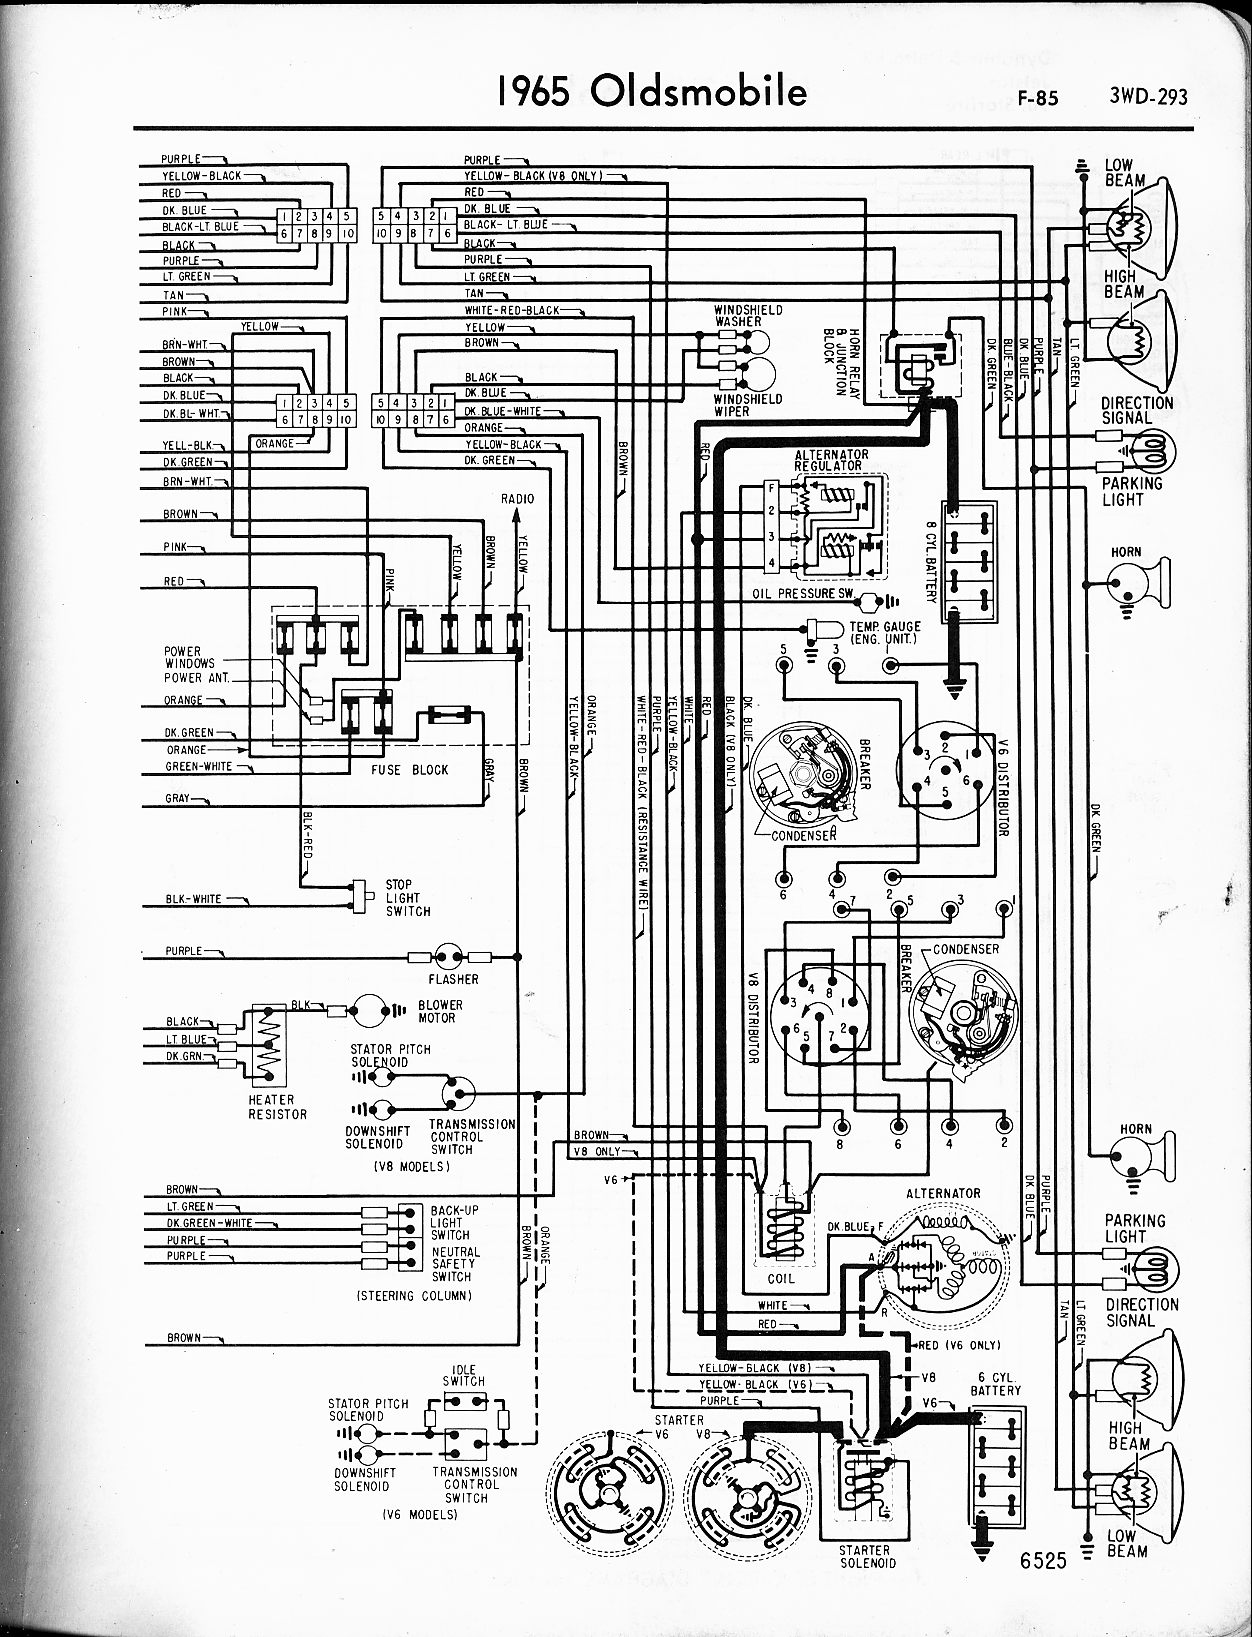 oldsmobile wiring diagrams - the old car manual project  the old car manual project